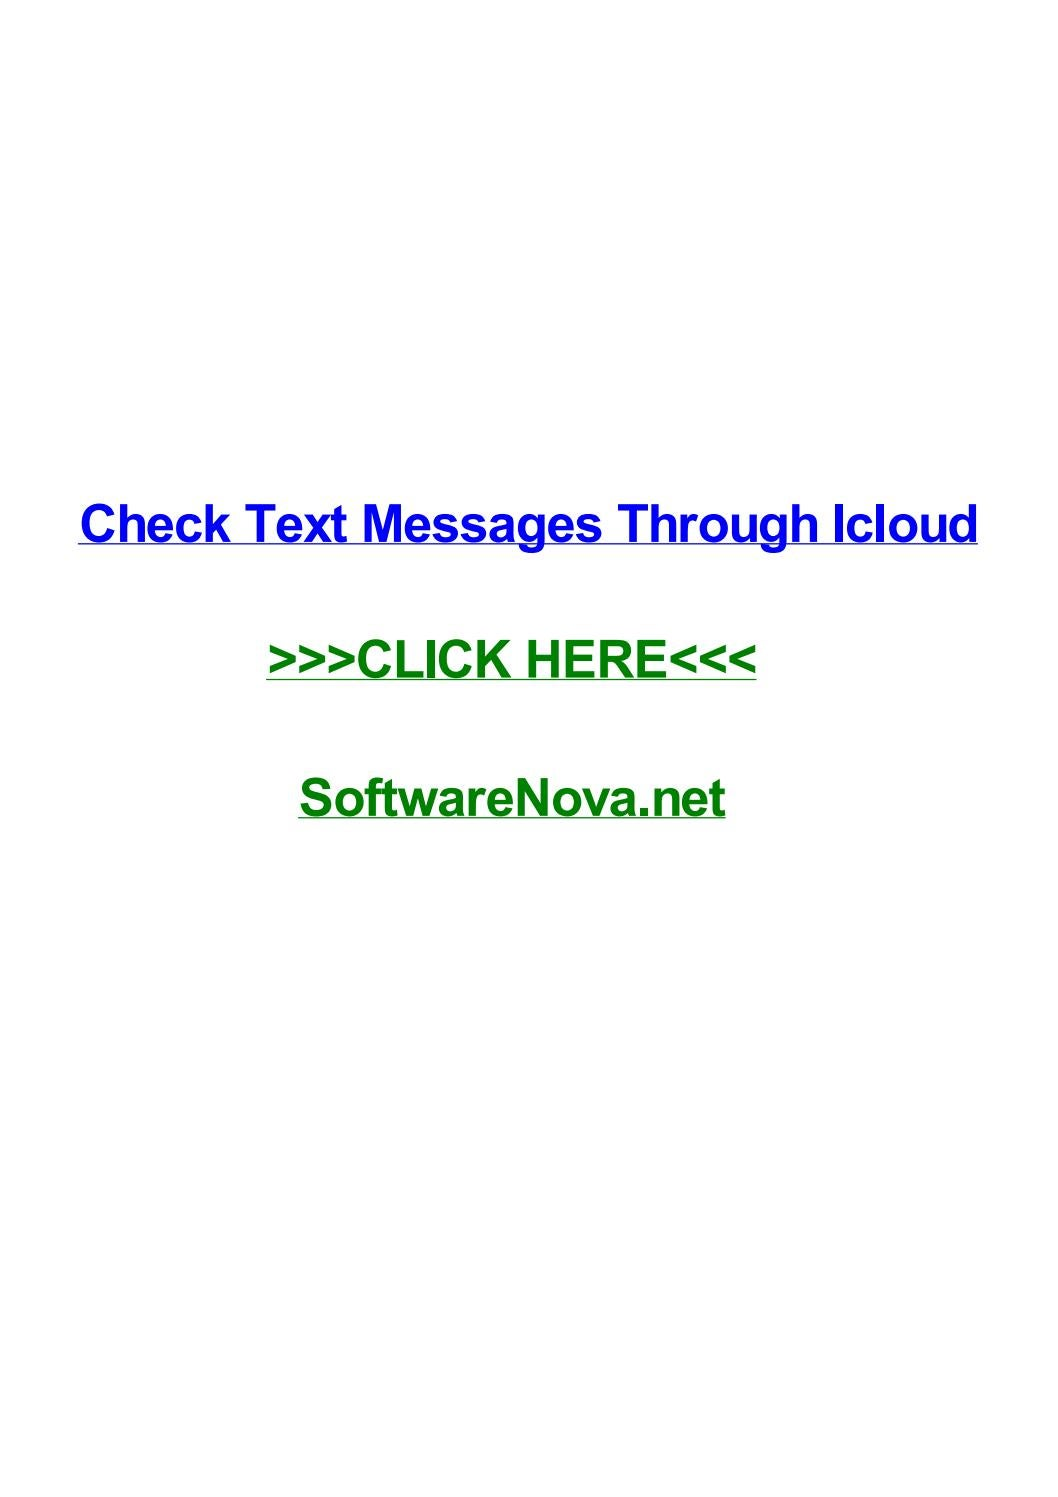 Check text messages through icloud by anniehmpo - issuu